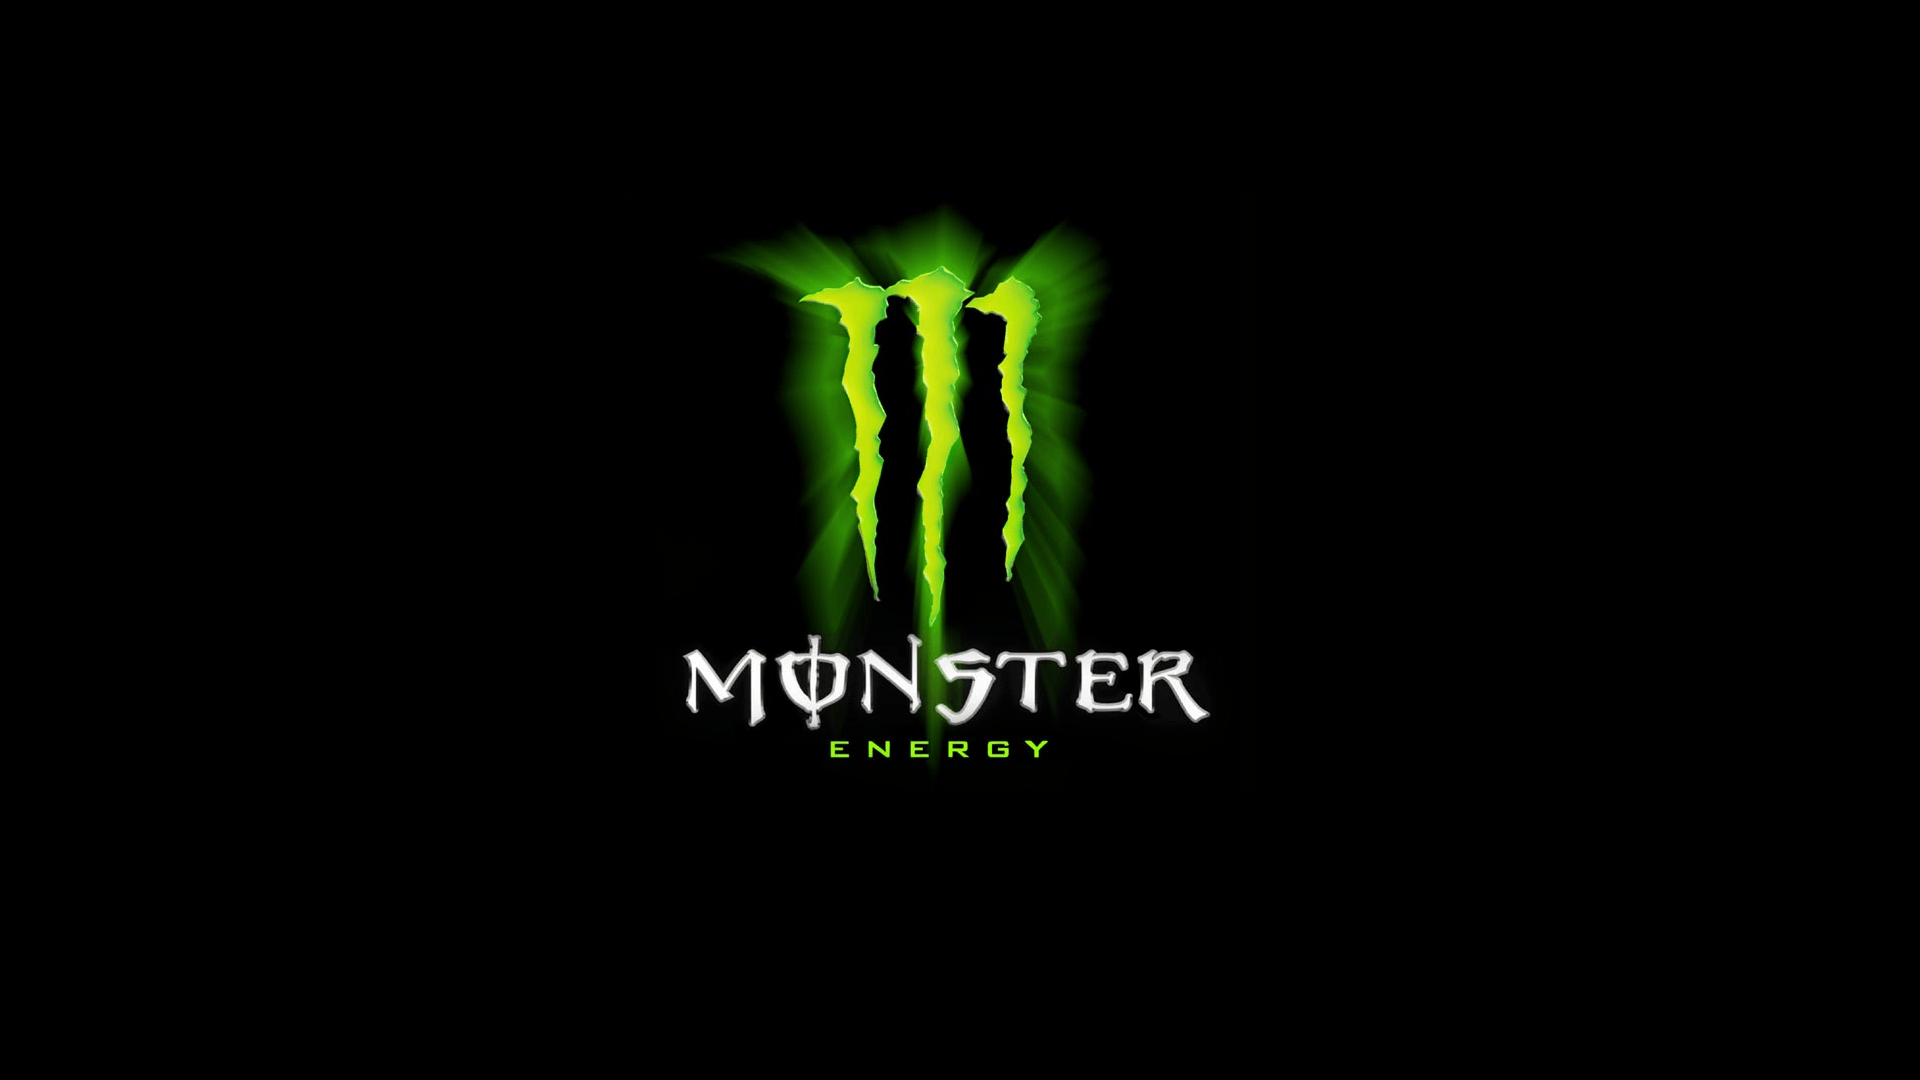 F1 Car Monster Energy Wallpaper Hd: Monster Energy Logo Wallpapers